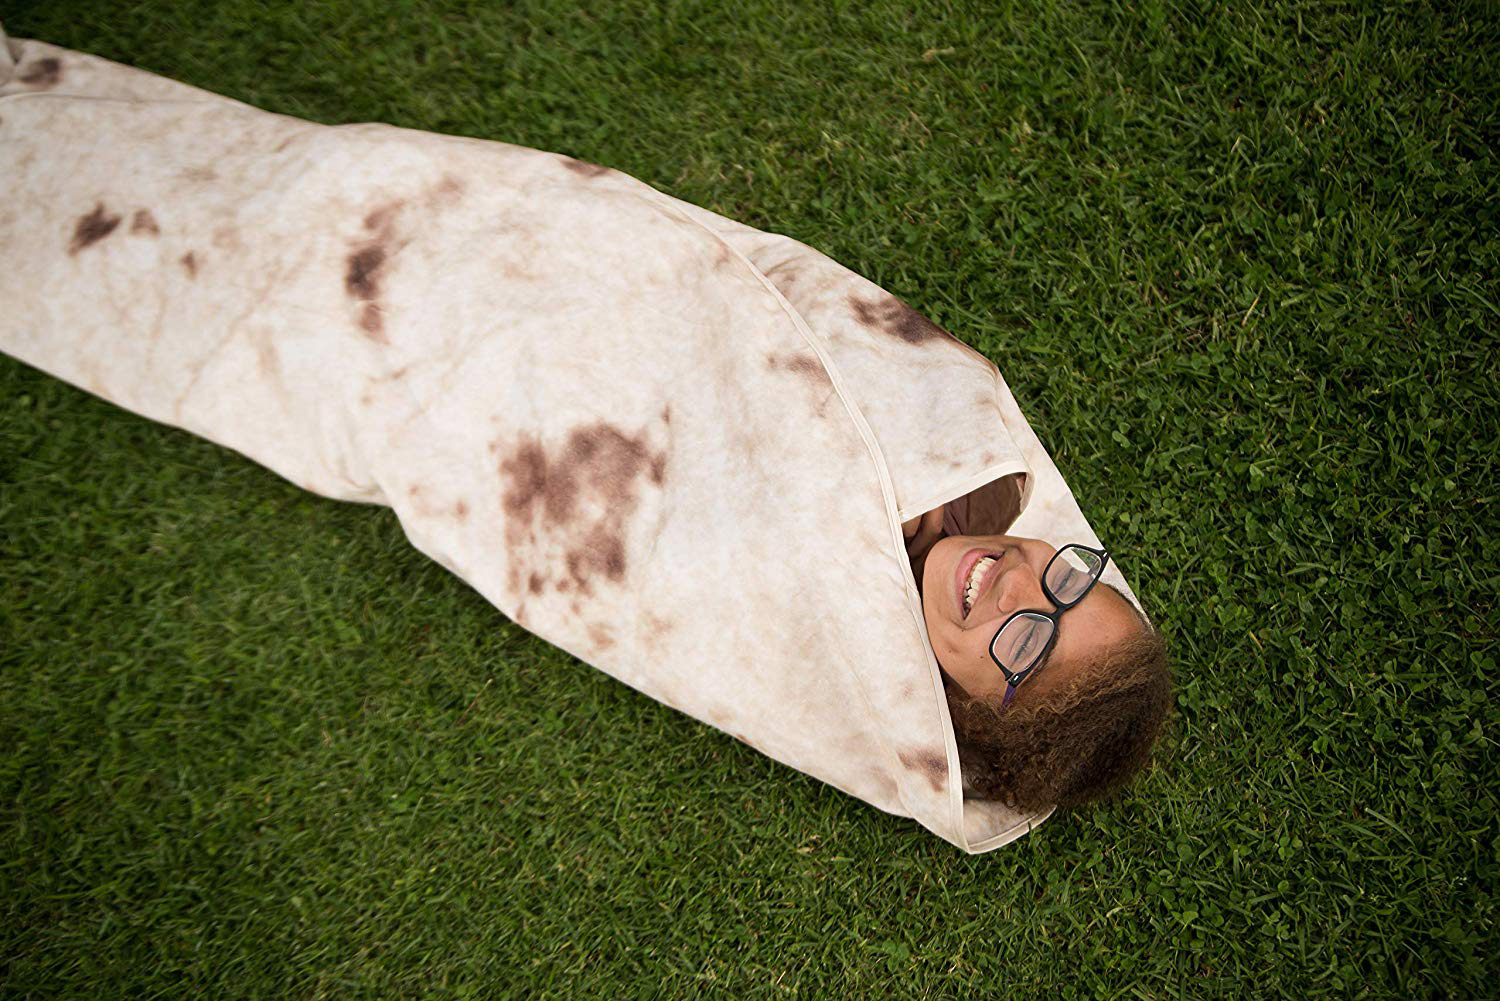 Ever Wanted To Be a Human Burrito? Now You Can With These Tortilla Print Blankets That Are Going Viral